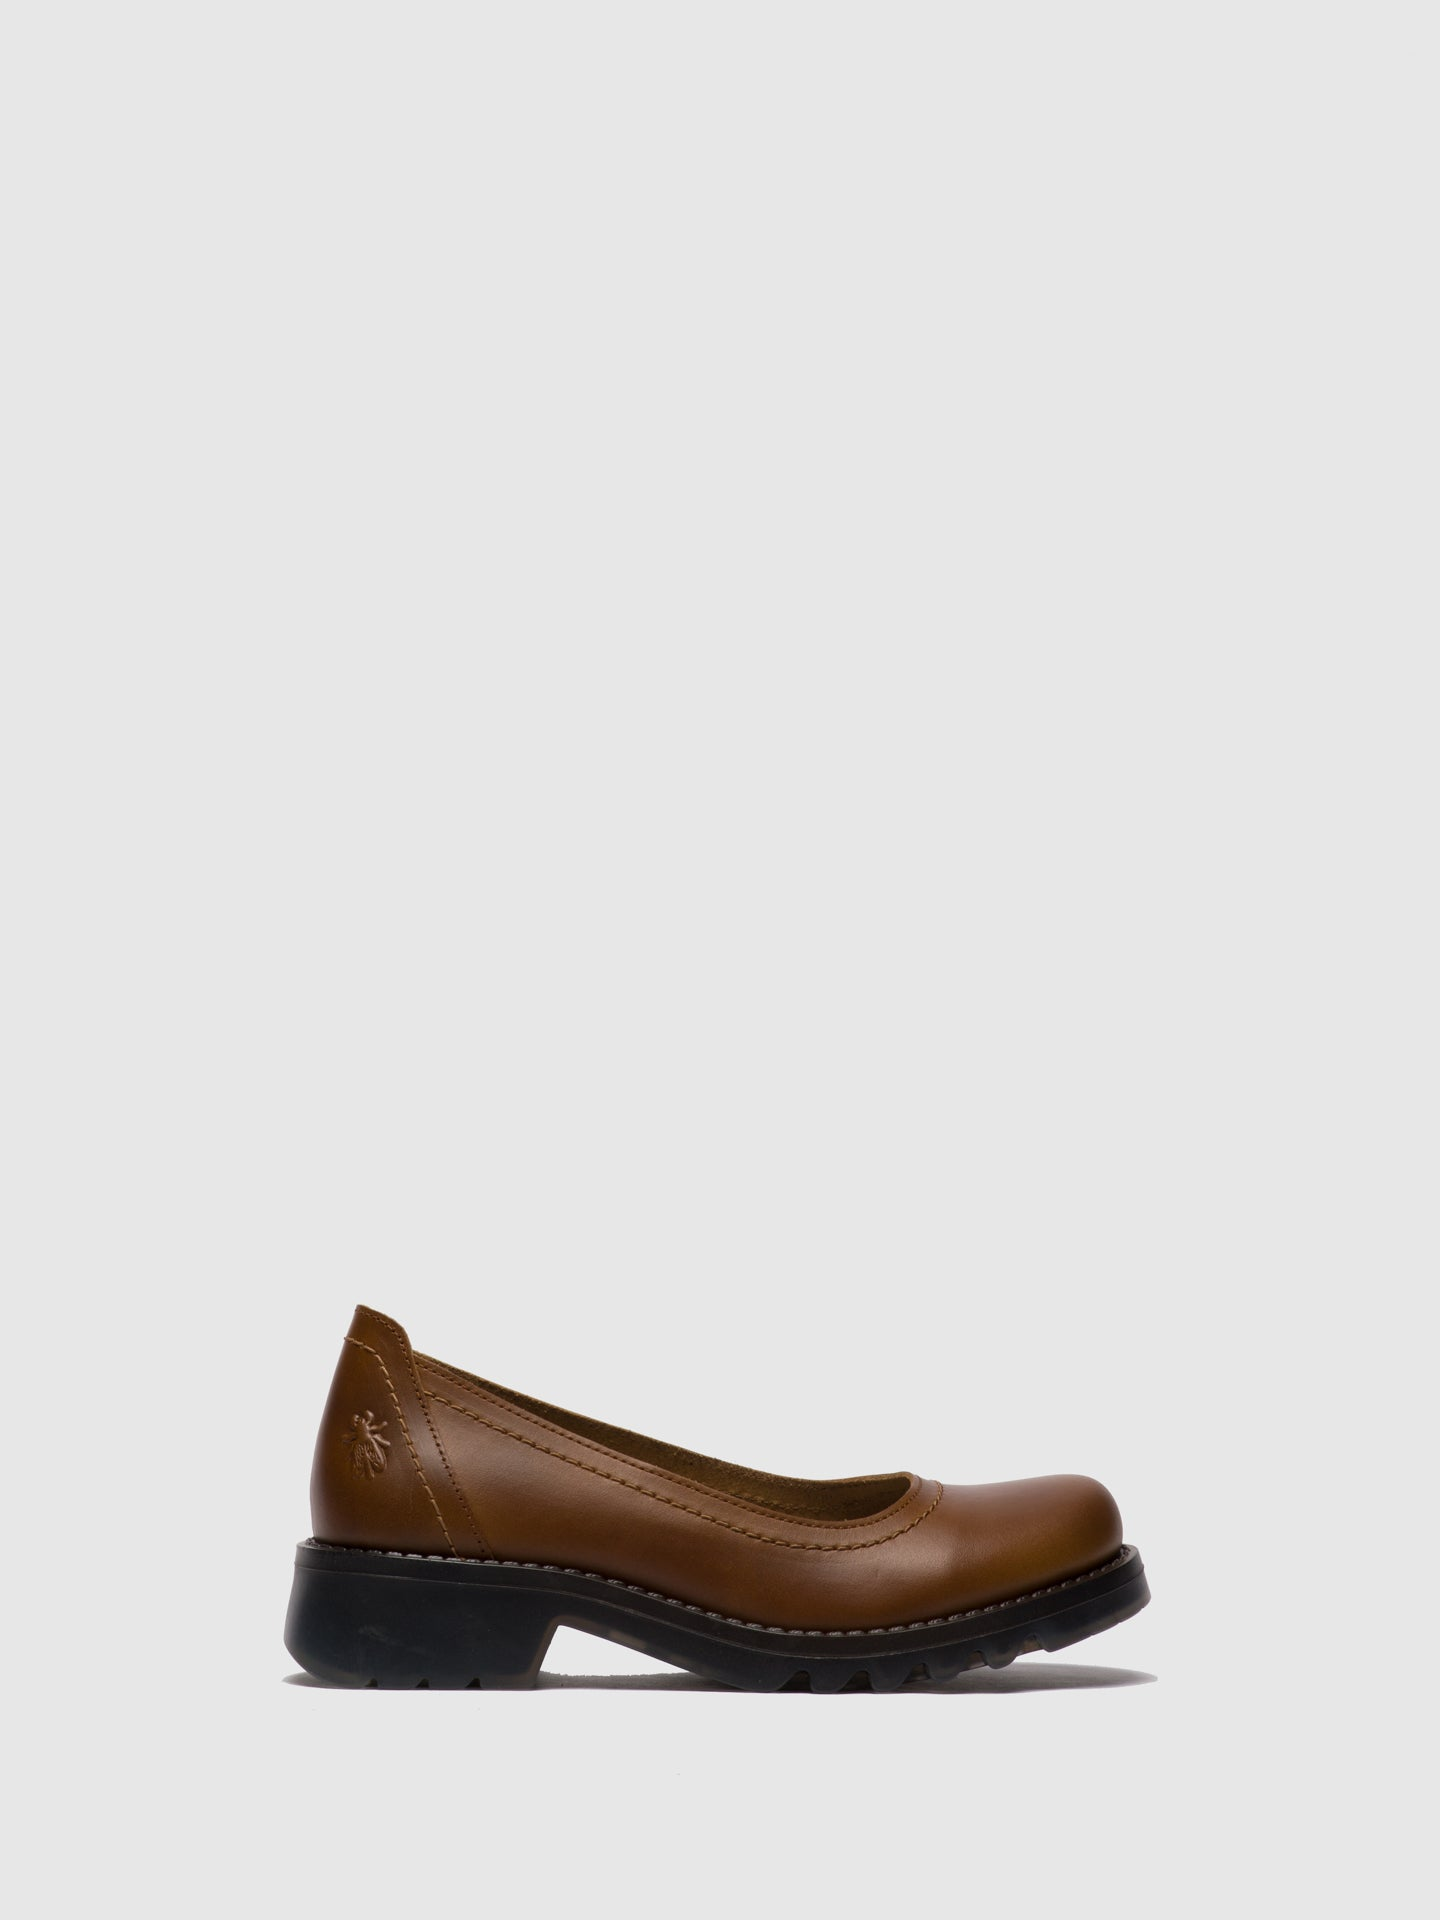 Fly London Camel Round Toe Shoes